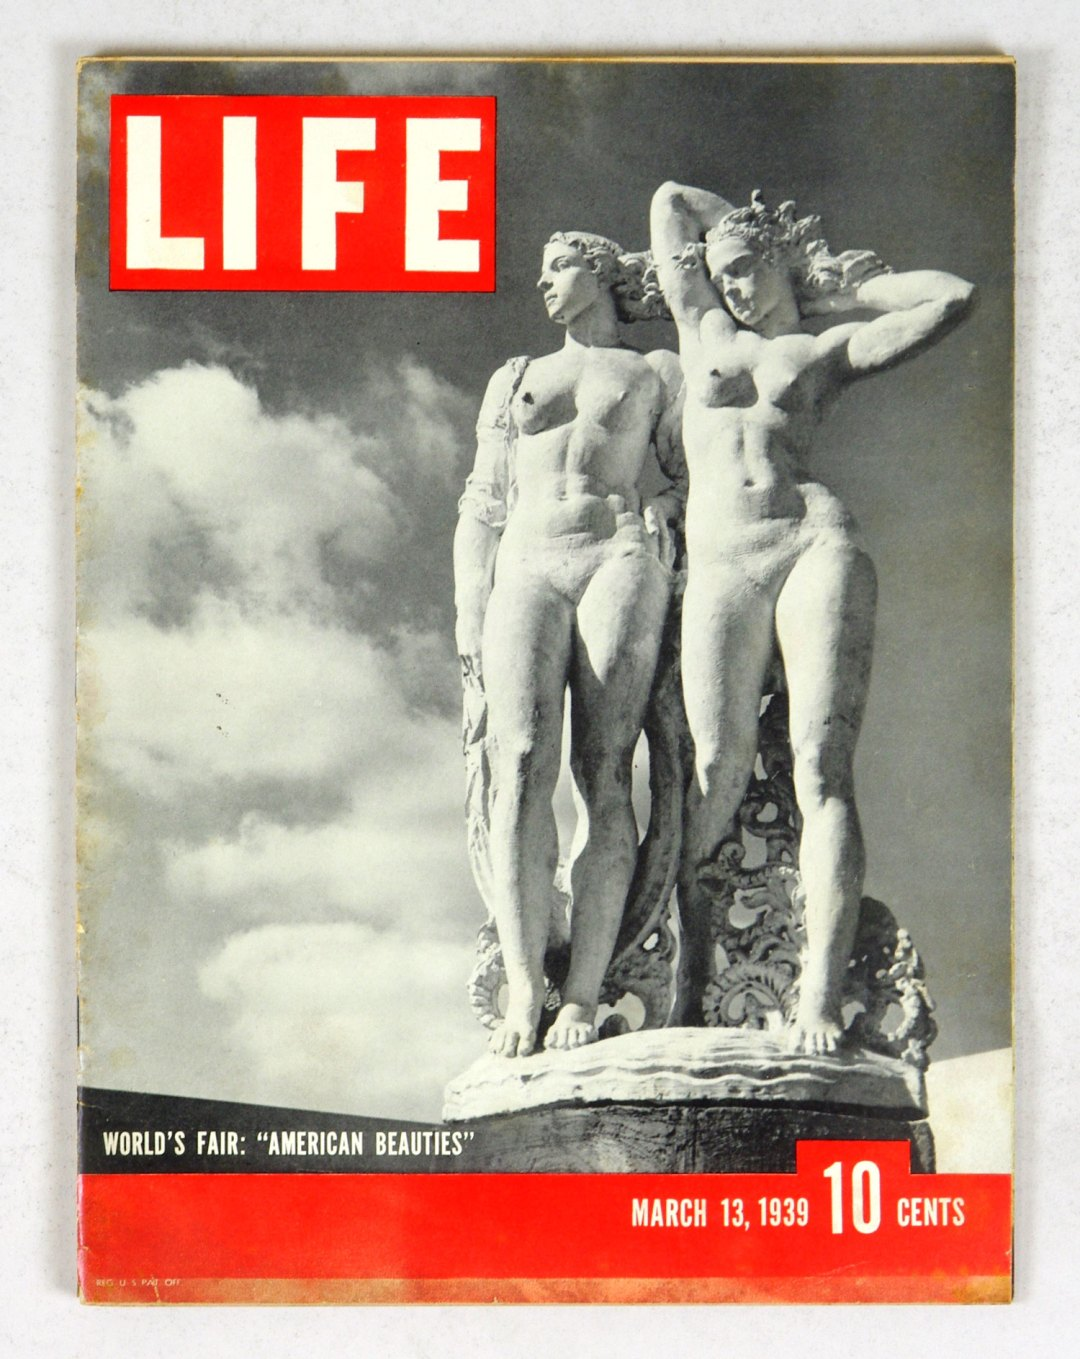 LIFE Magazine 1939 March 13 World's Fair American Beauties